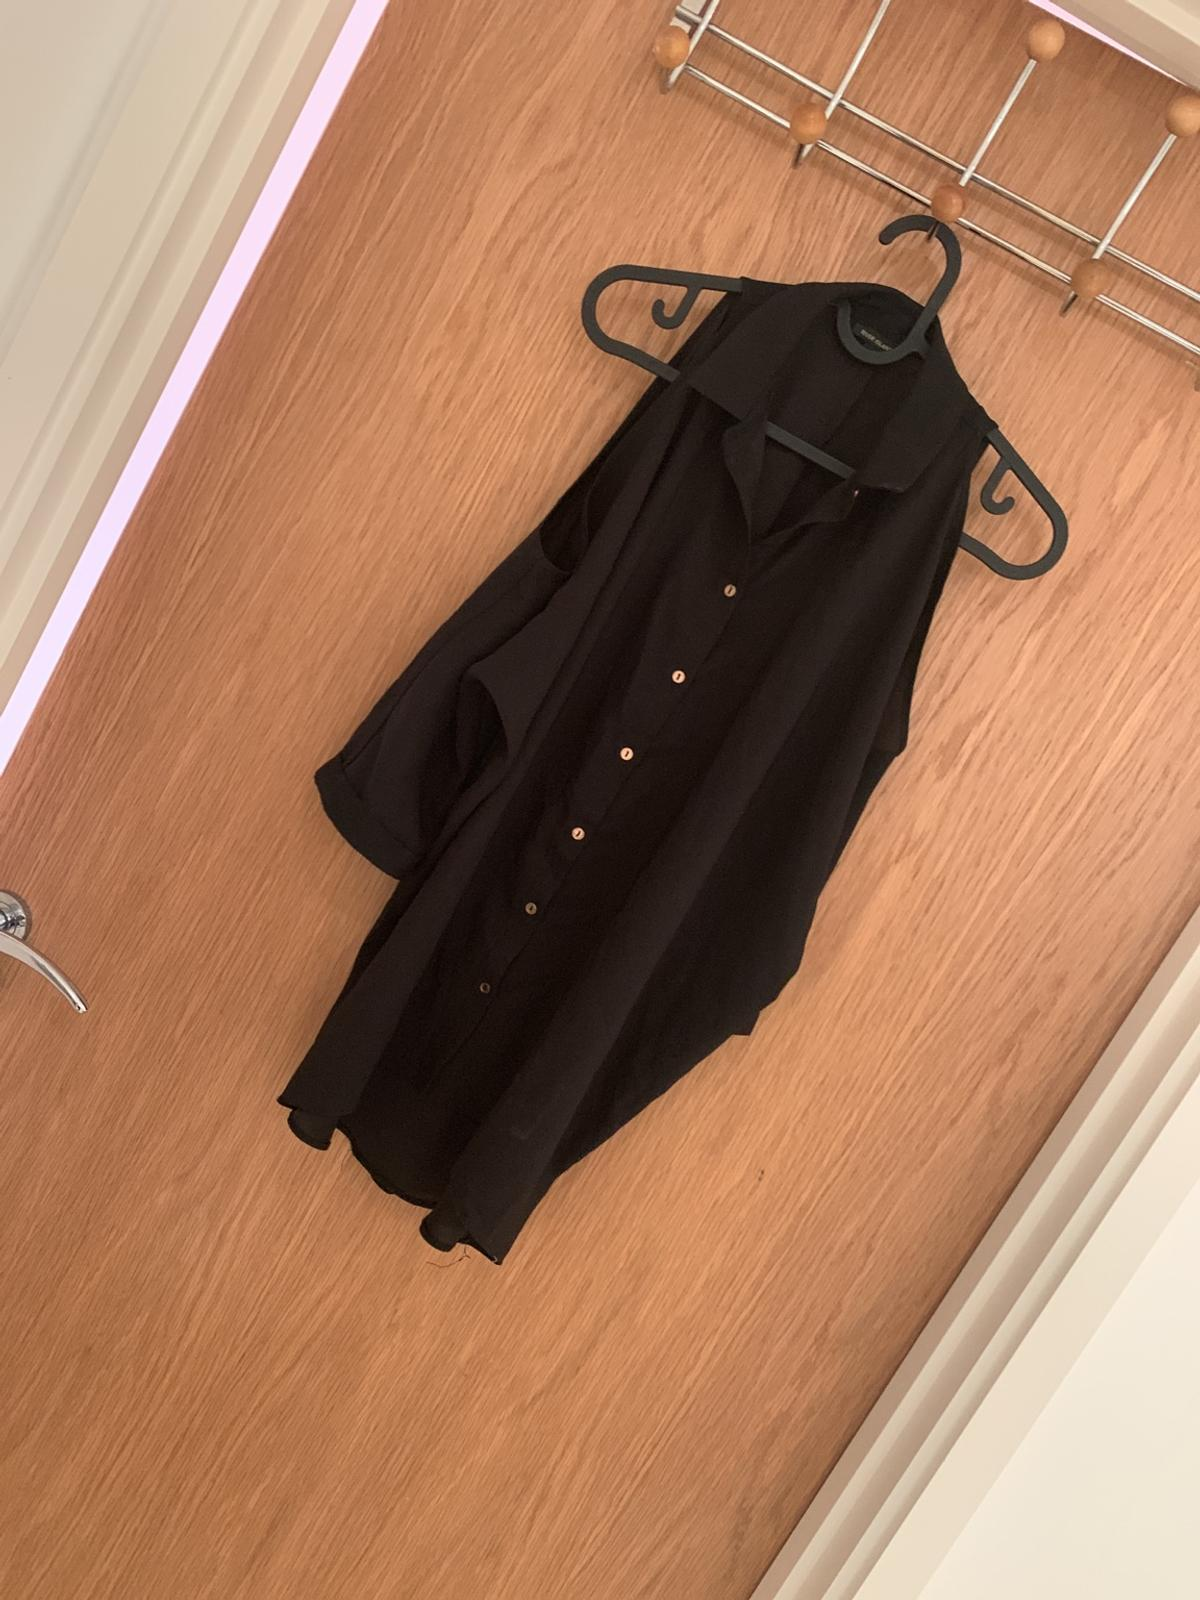 River island black shirt Open sleeve and open back  Size 6 but fits meet as a 14 coz the back is open Comfortable to wear as relaxed fit